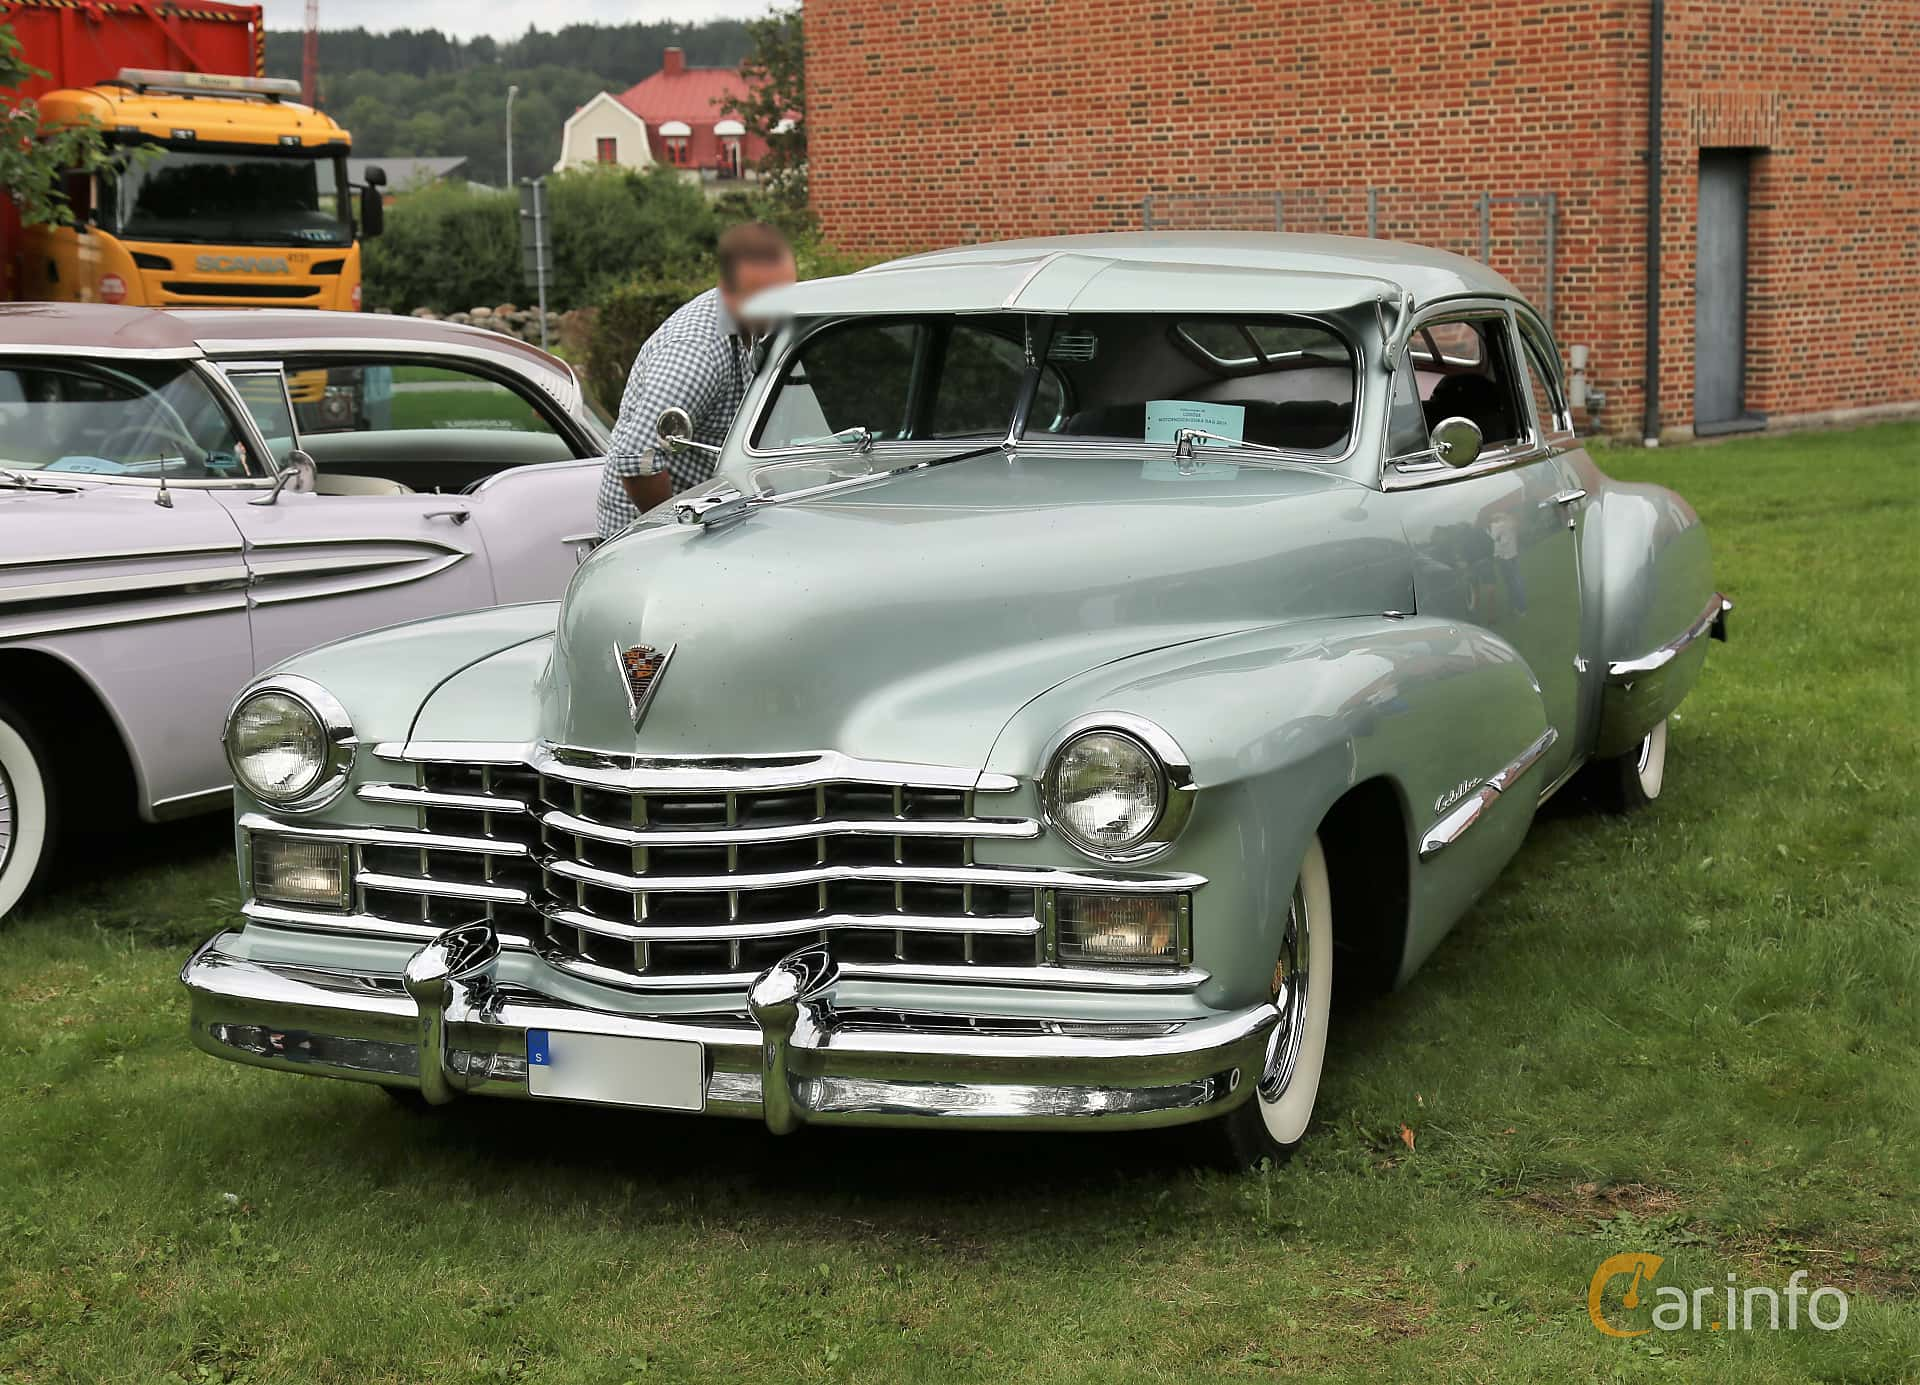 Cadillac Sixty-Two Club Coupé 5.7 V8 Hydra-Matic, 152hp, 1947 at Lödöse motornostalgiska dag 2019